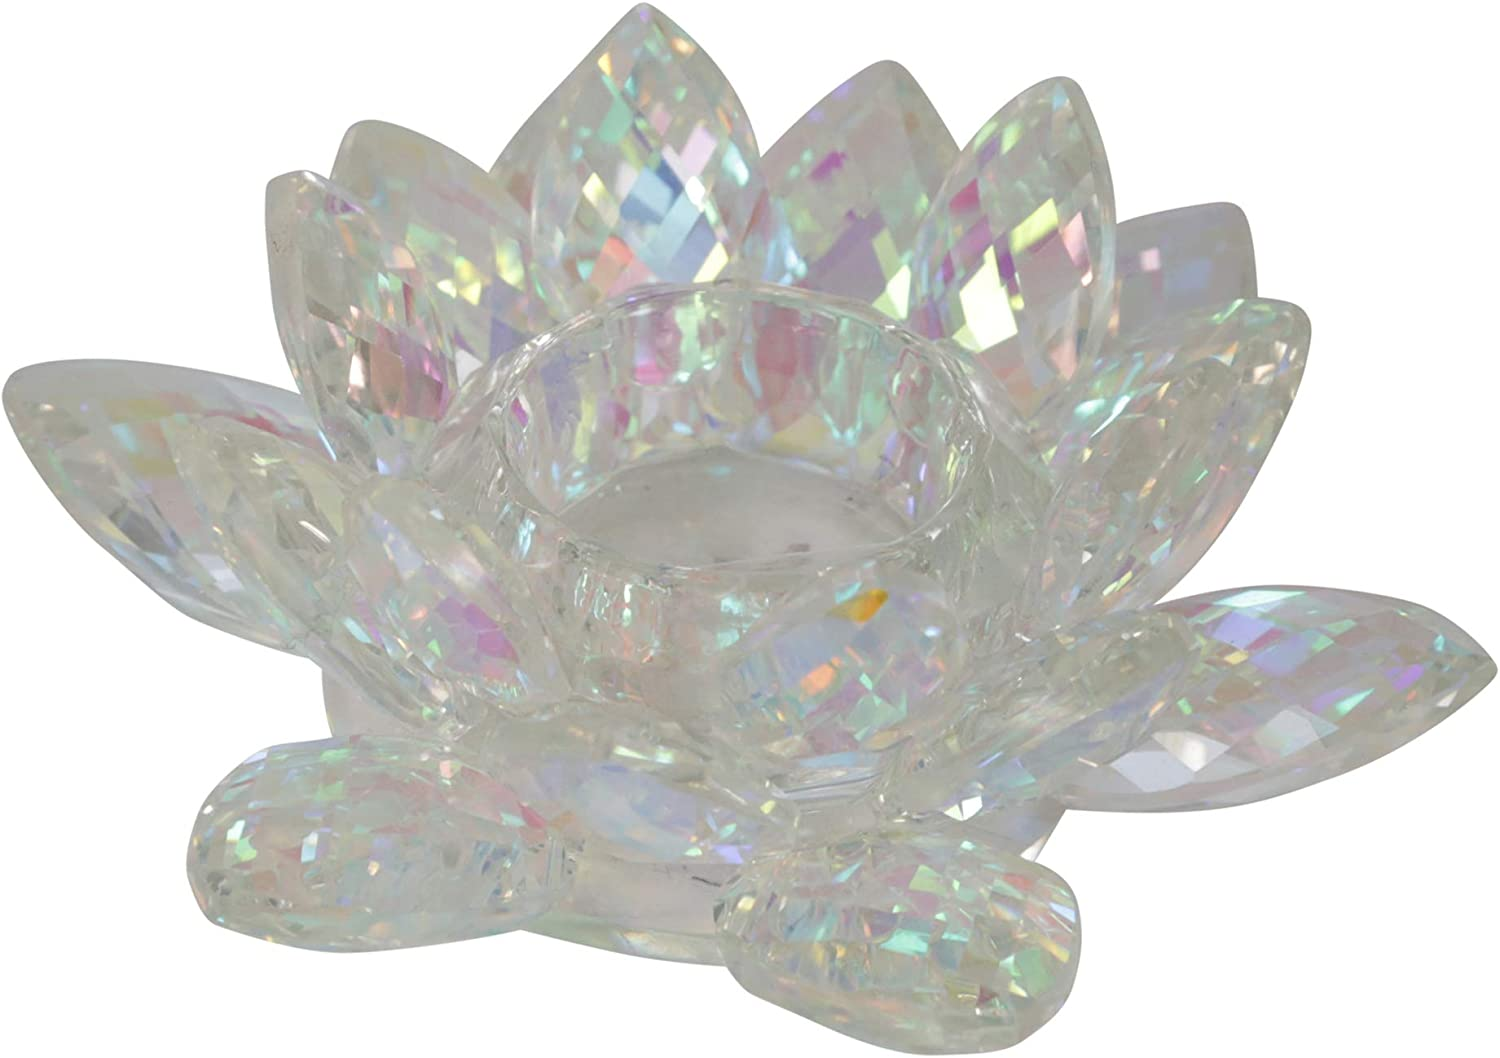 "Sagebrook Home 13211-14 Glass Candle Holder, 6"" x 6"" x 2.25"", Rainbow"